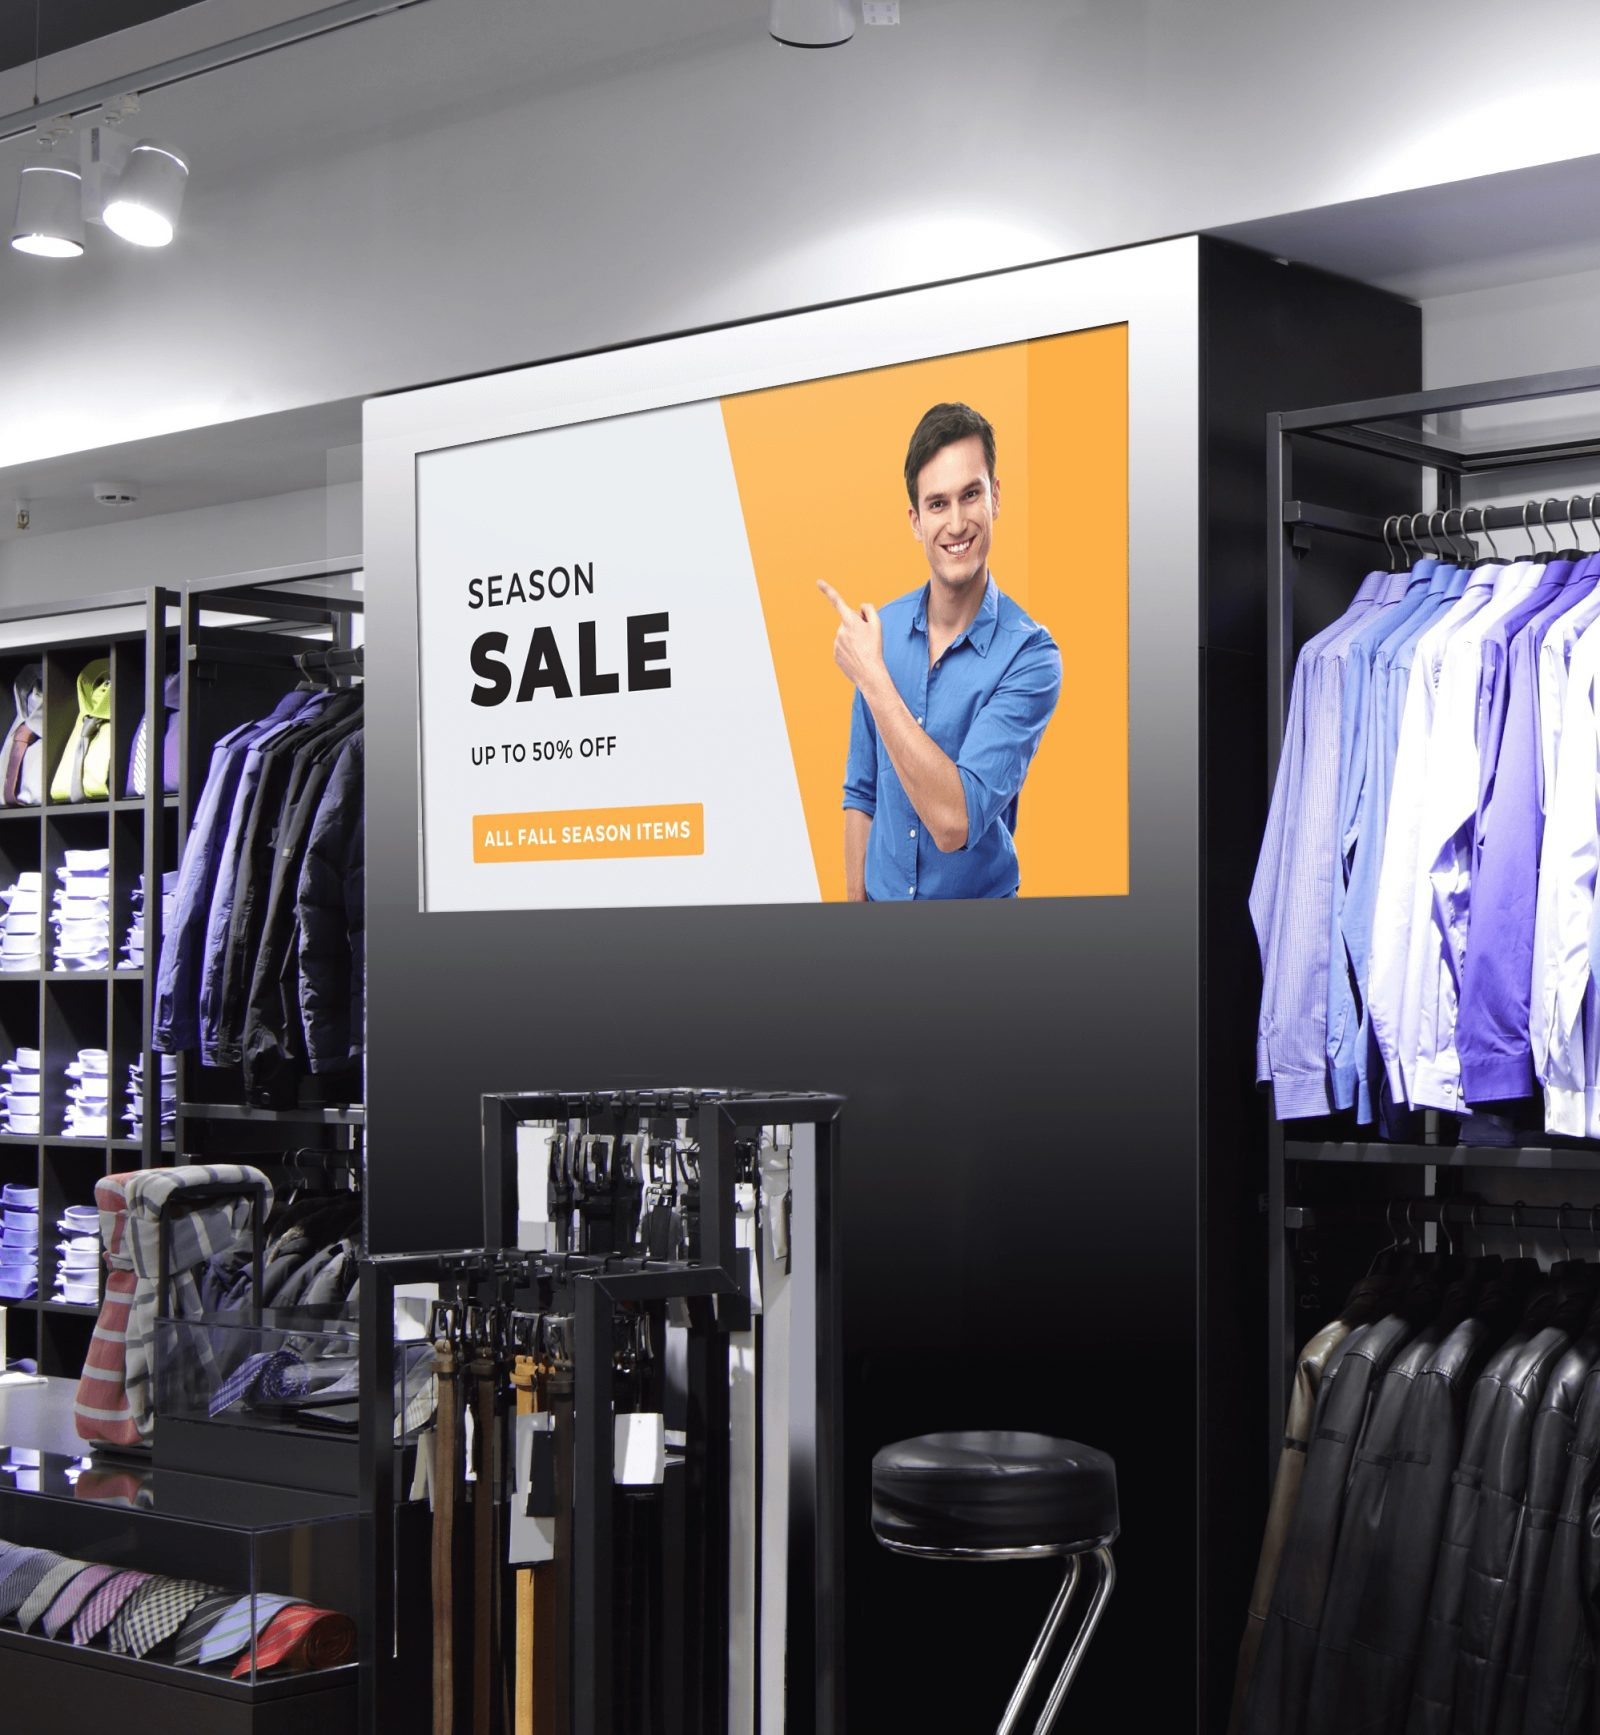 content management system used in-store